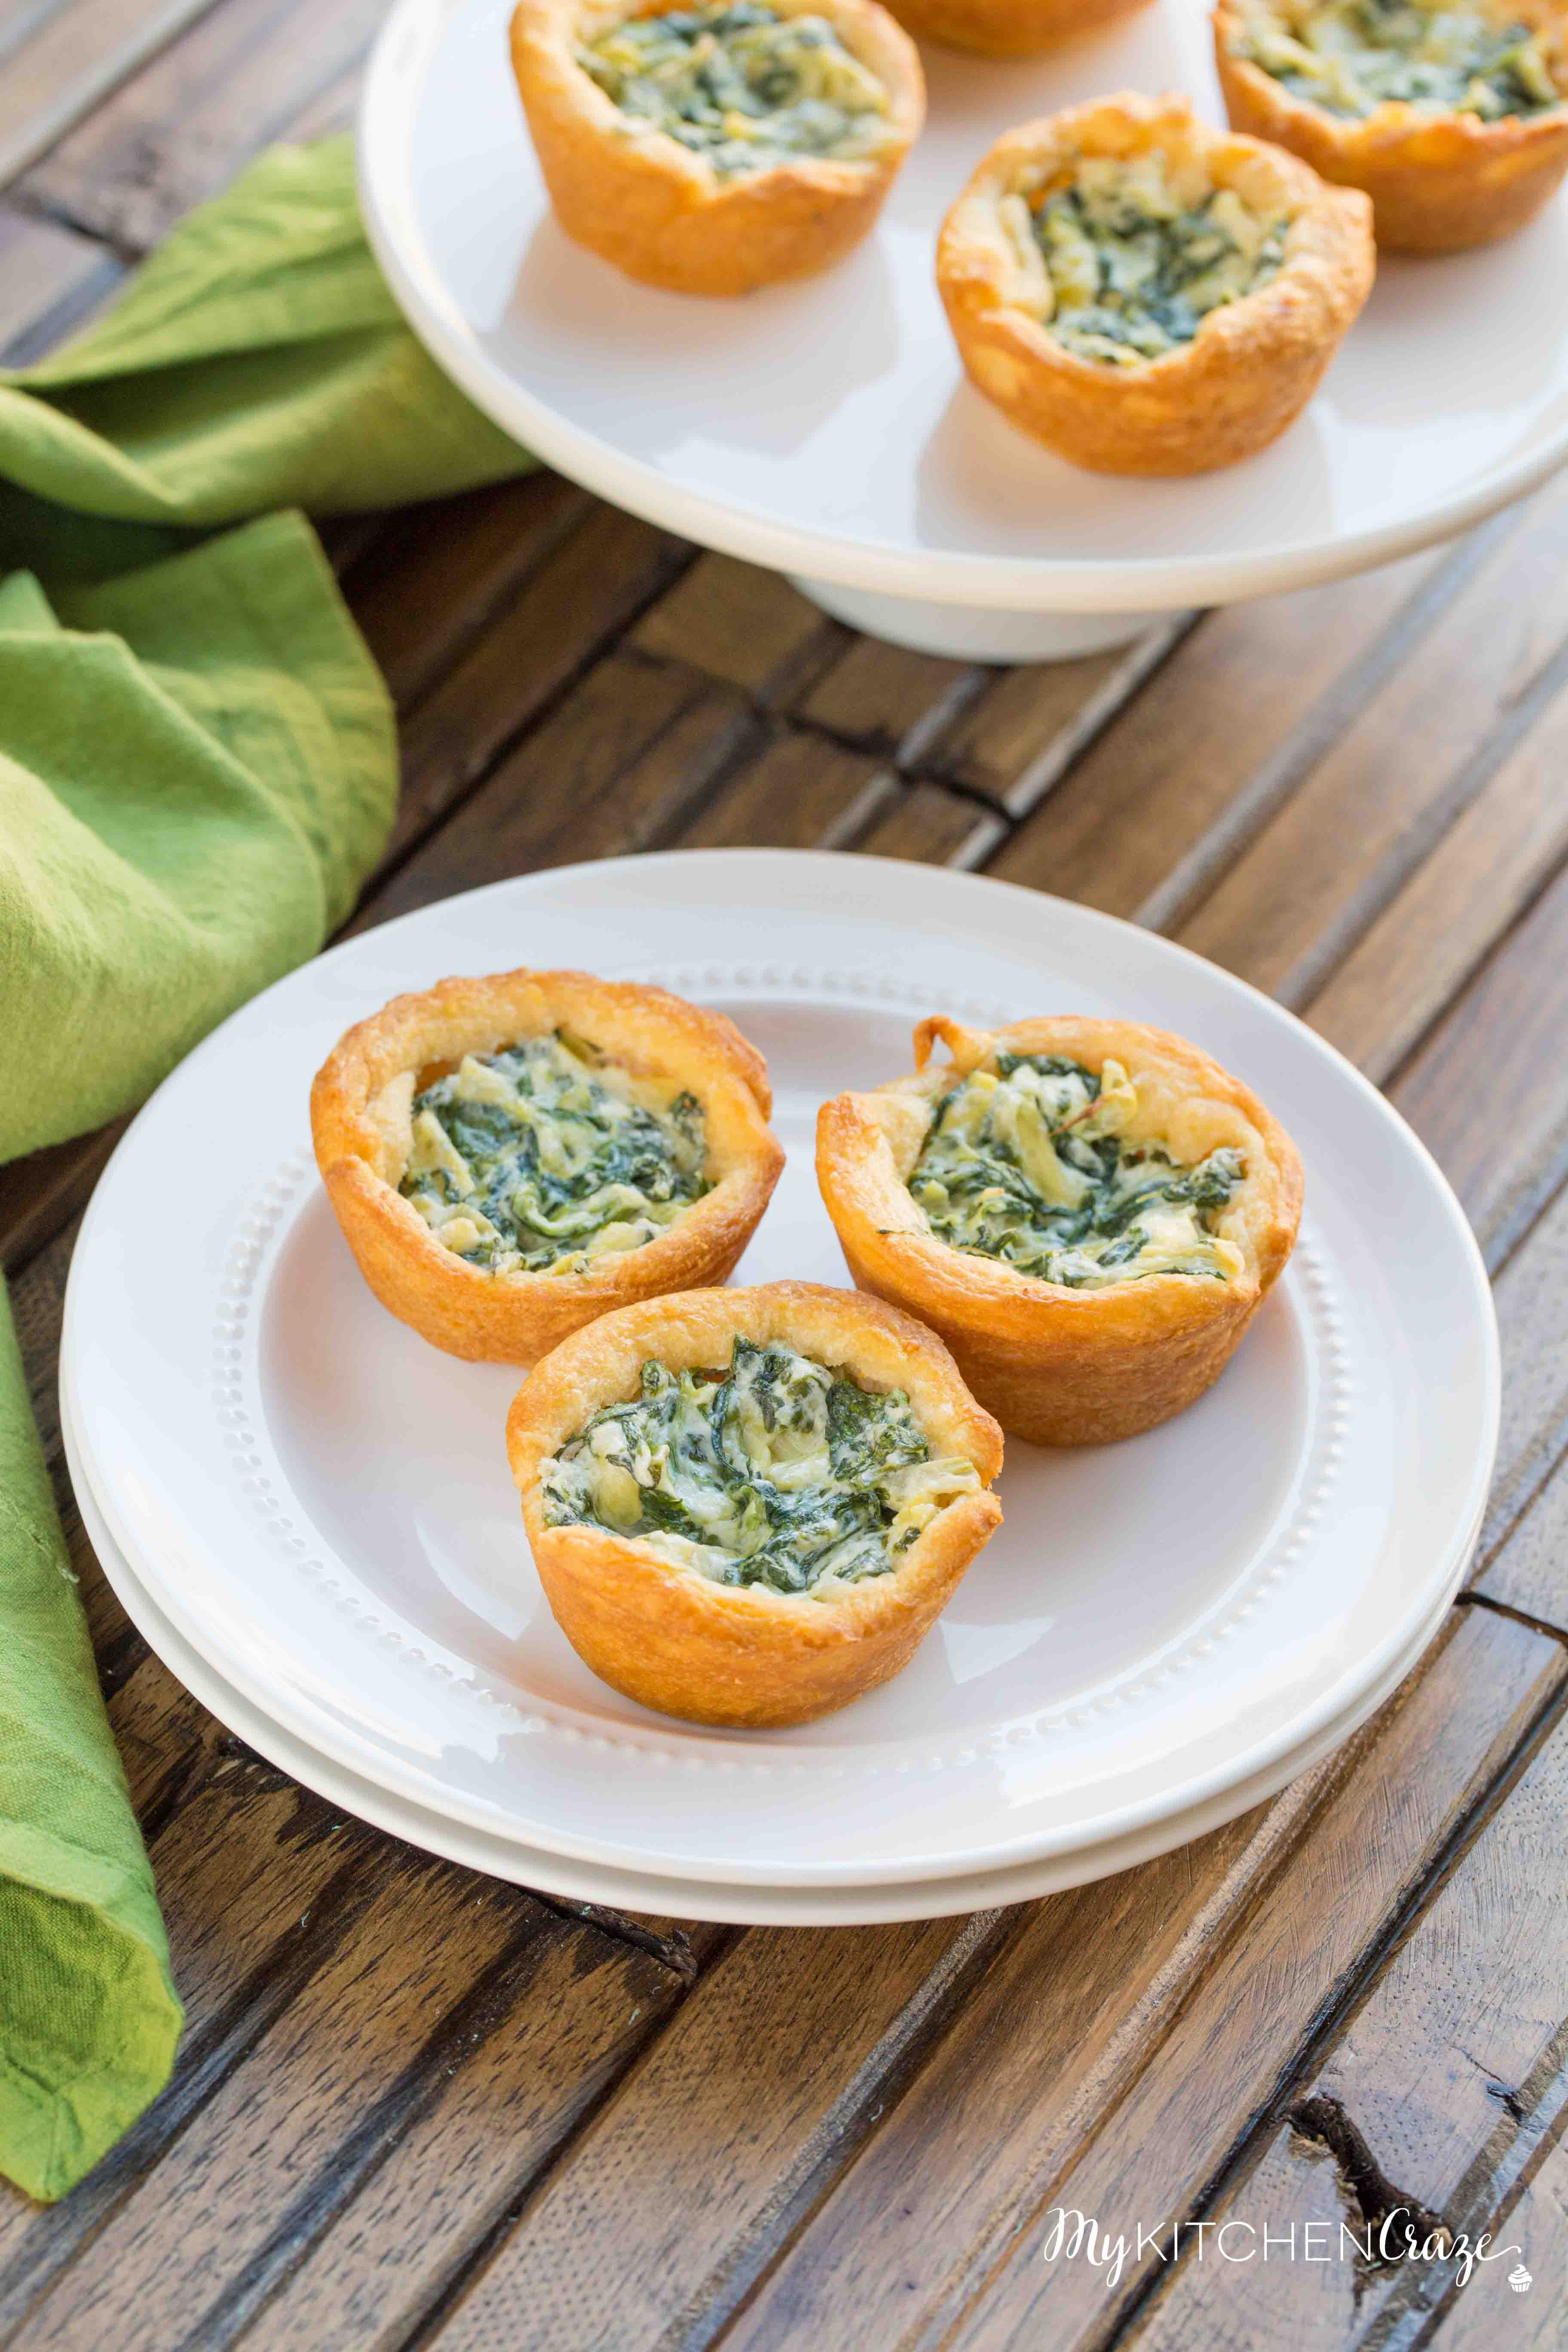 Spinach Artichoke Cups ~ mykitchencraze.com ~ This appetizer is perfect for any potlucks or parties. They take no time at all to make and taste delicious. Your guest won't be able to eat just one!